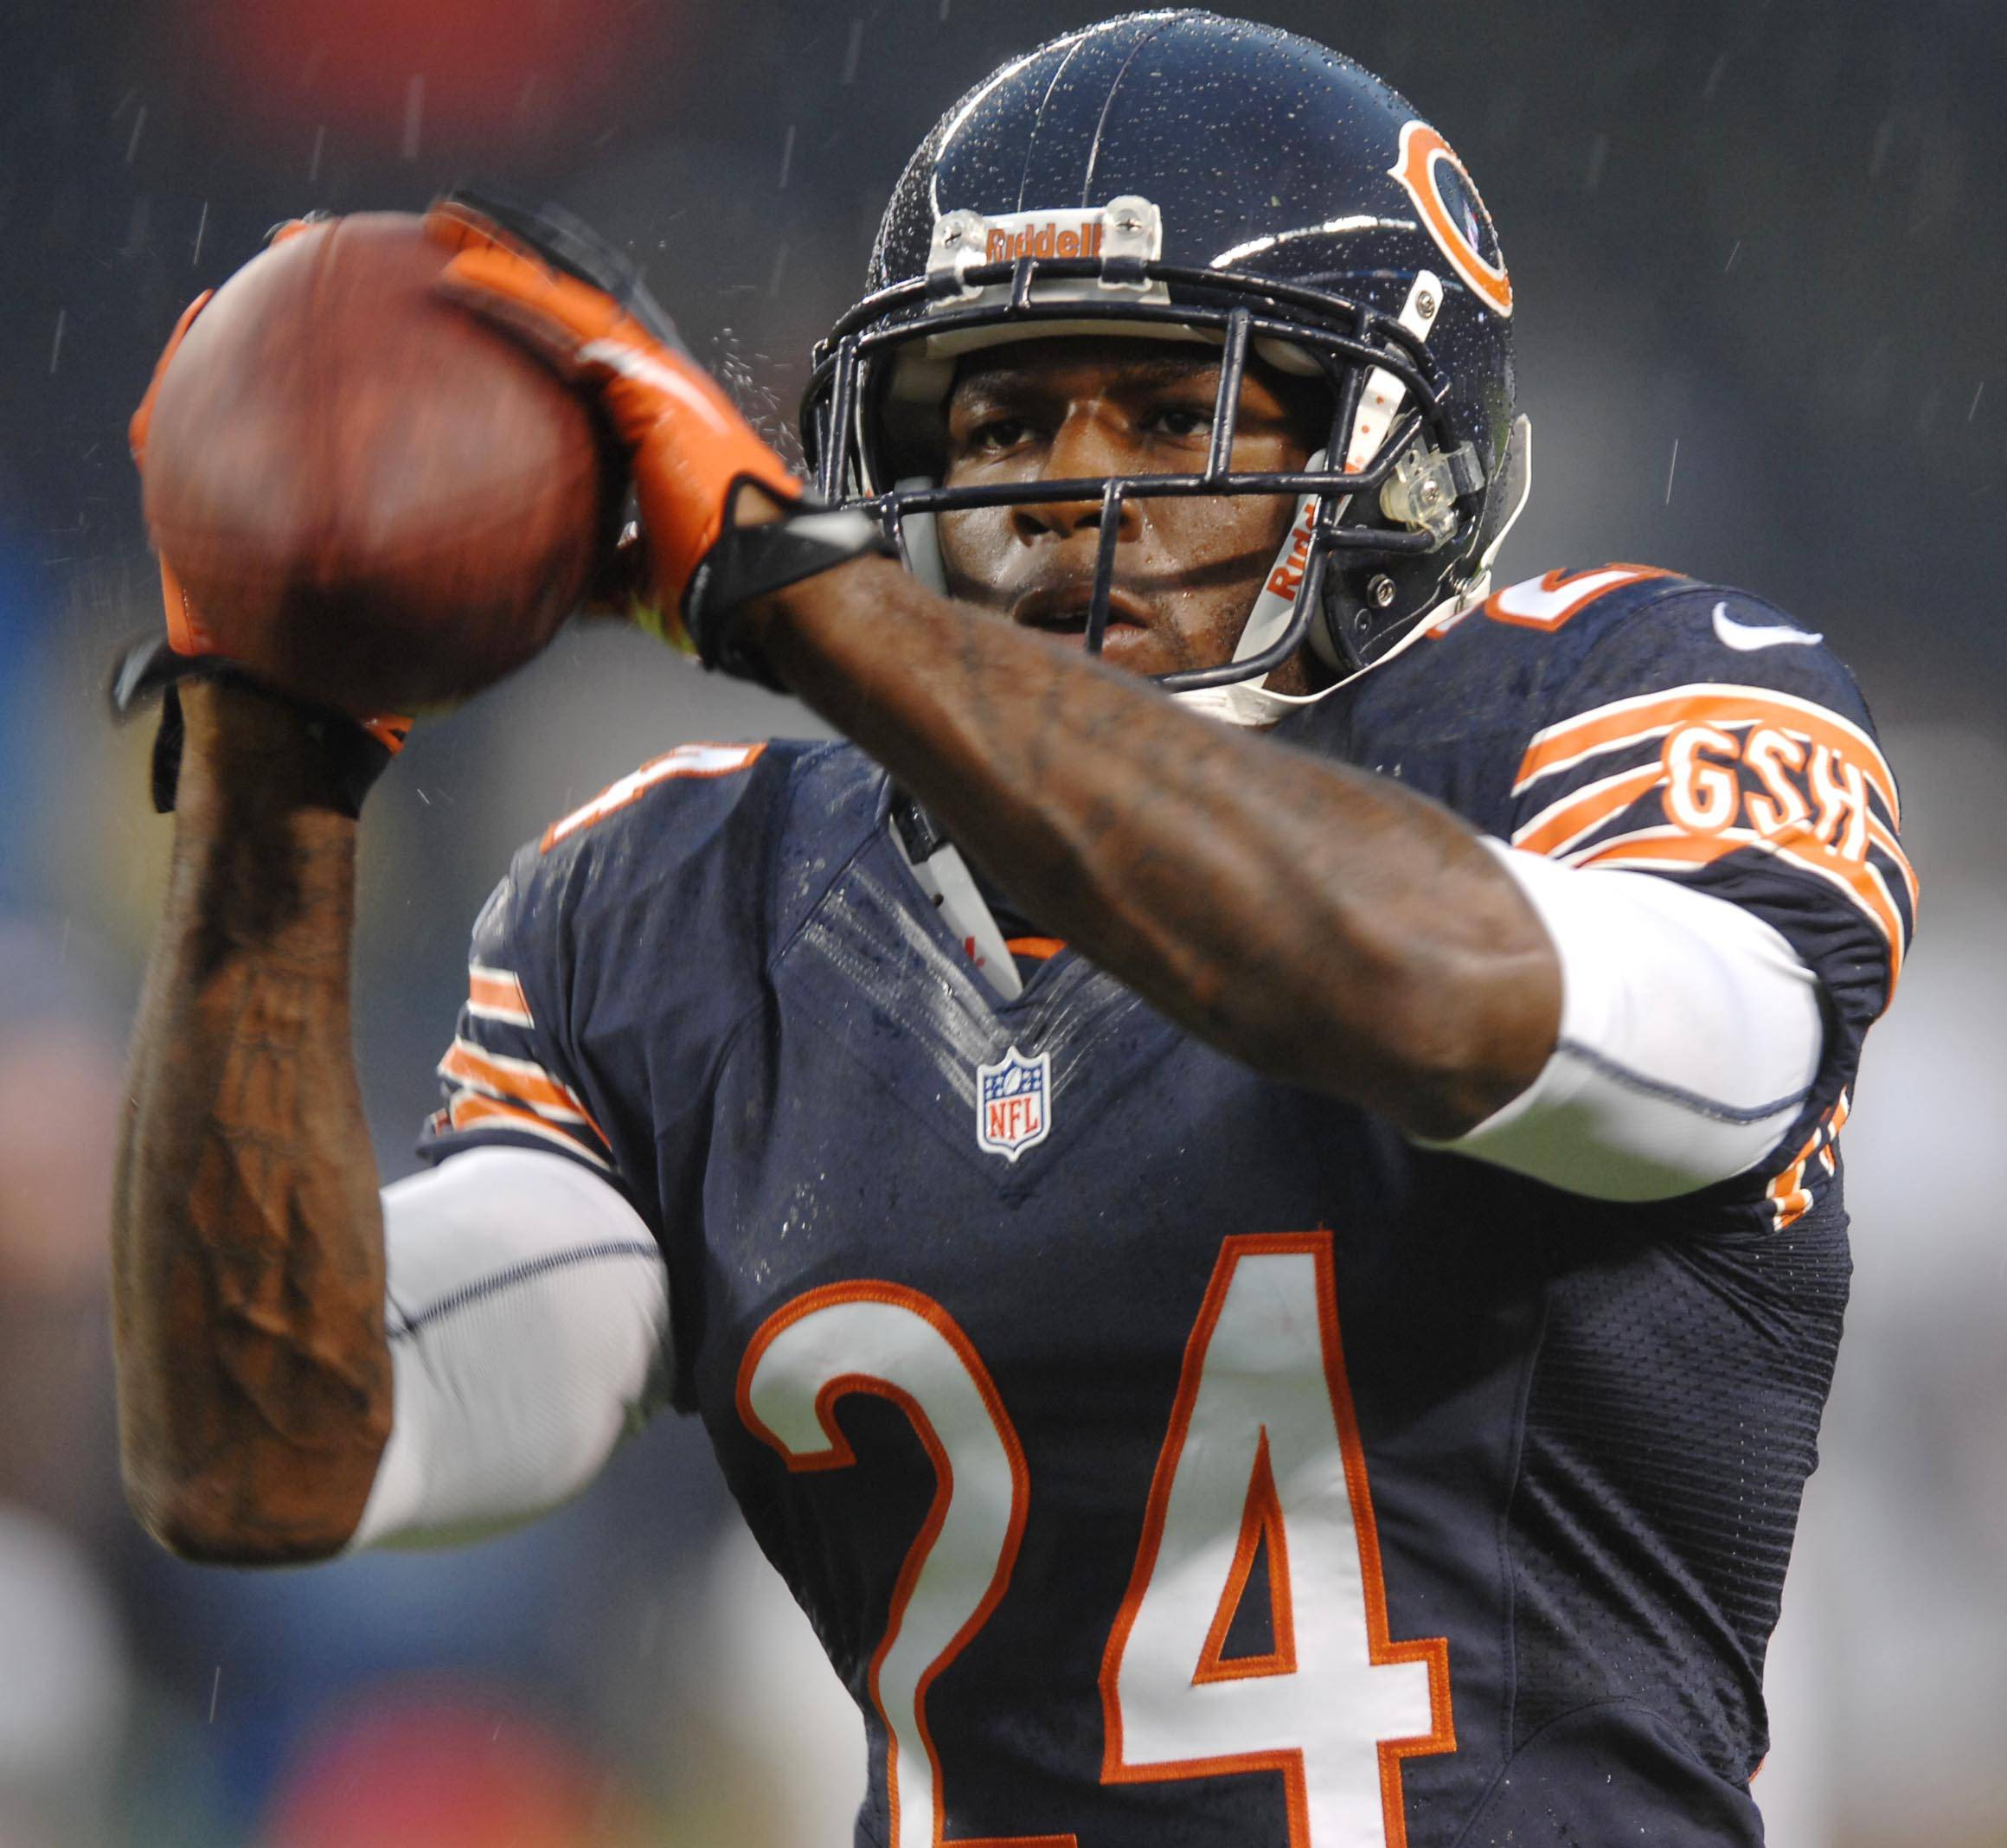 After missing all of last season, Chicago Bears defensive back Kelvin Hayden has agreed to a one-year contract for the 2014 season.